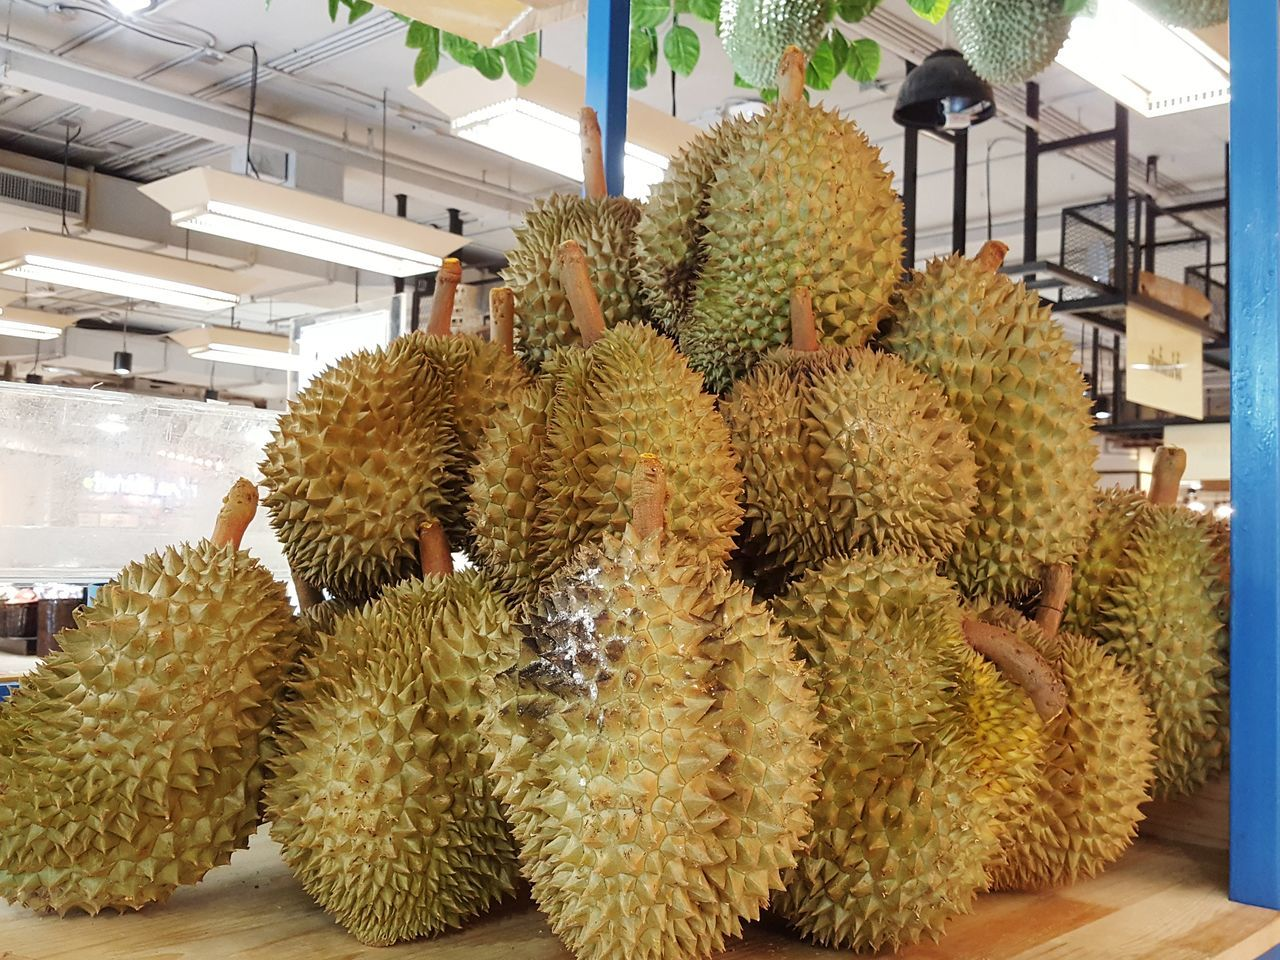 Fruit Stall Durian Stall Fruit Spiked Durian Tropical Fruit